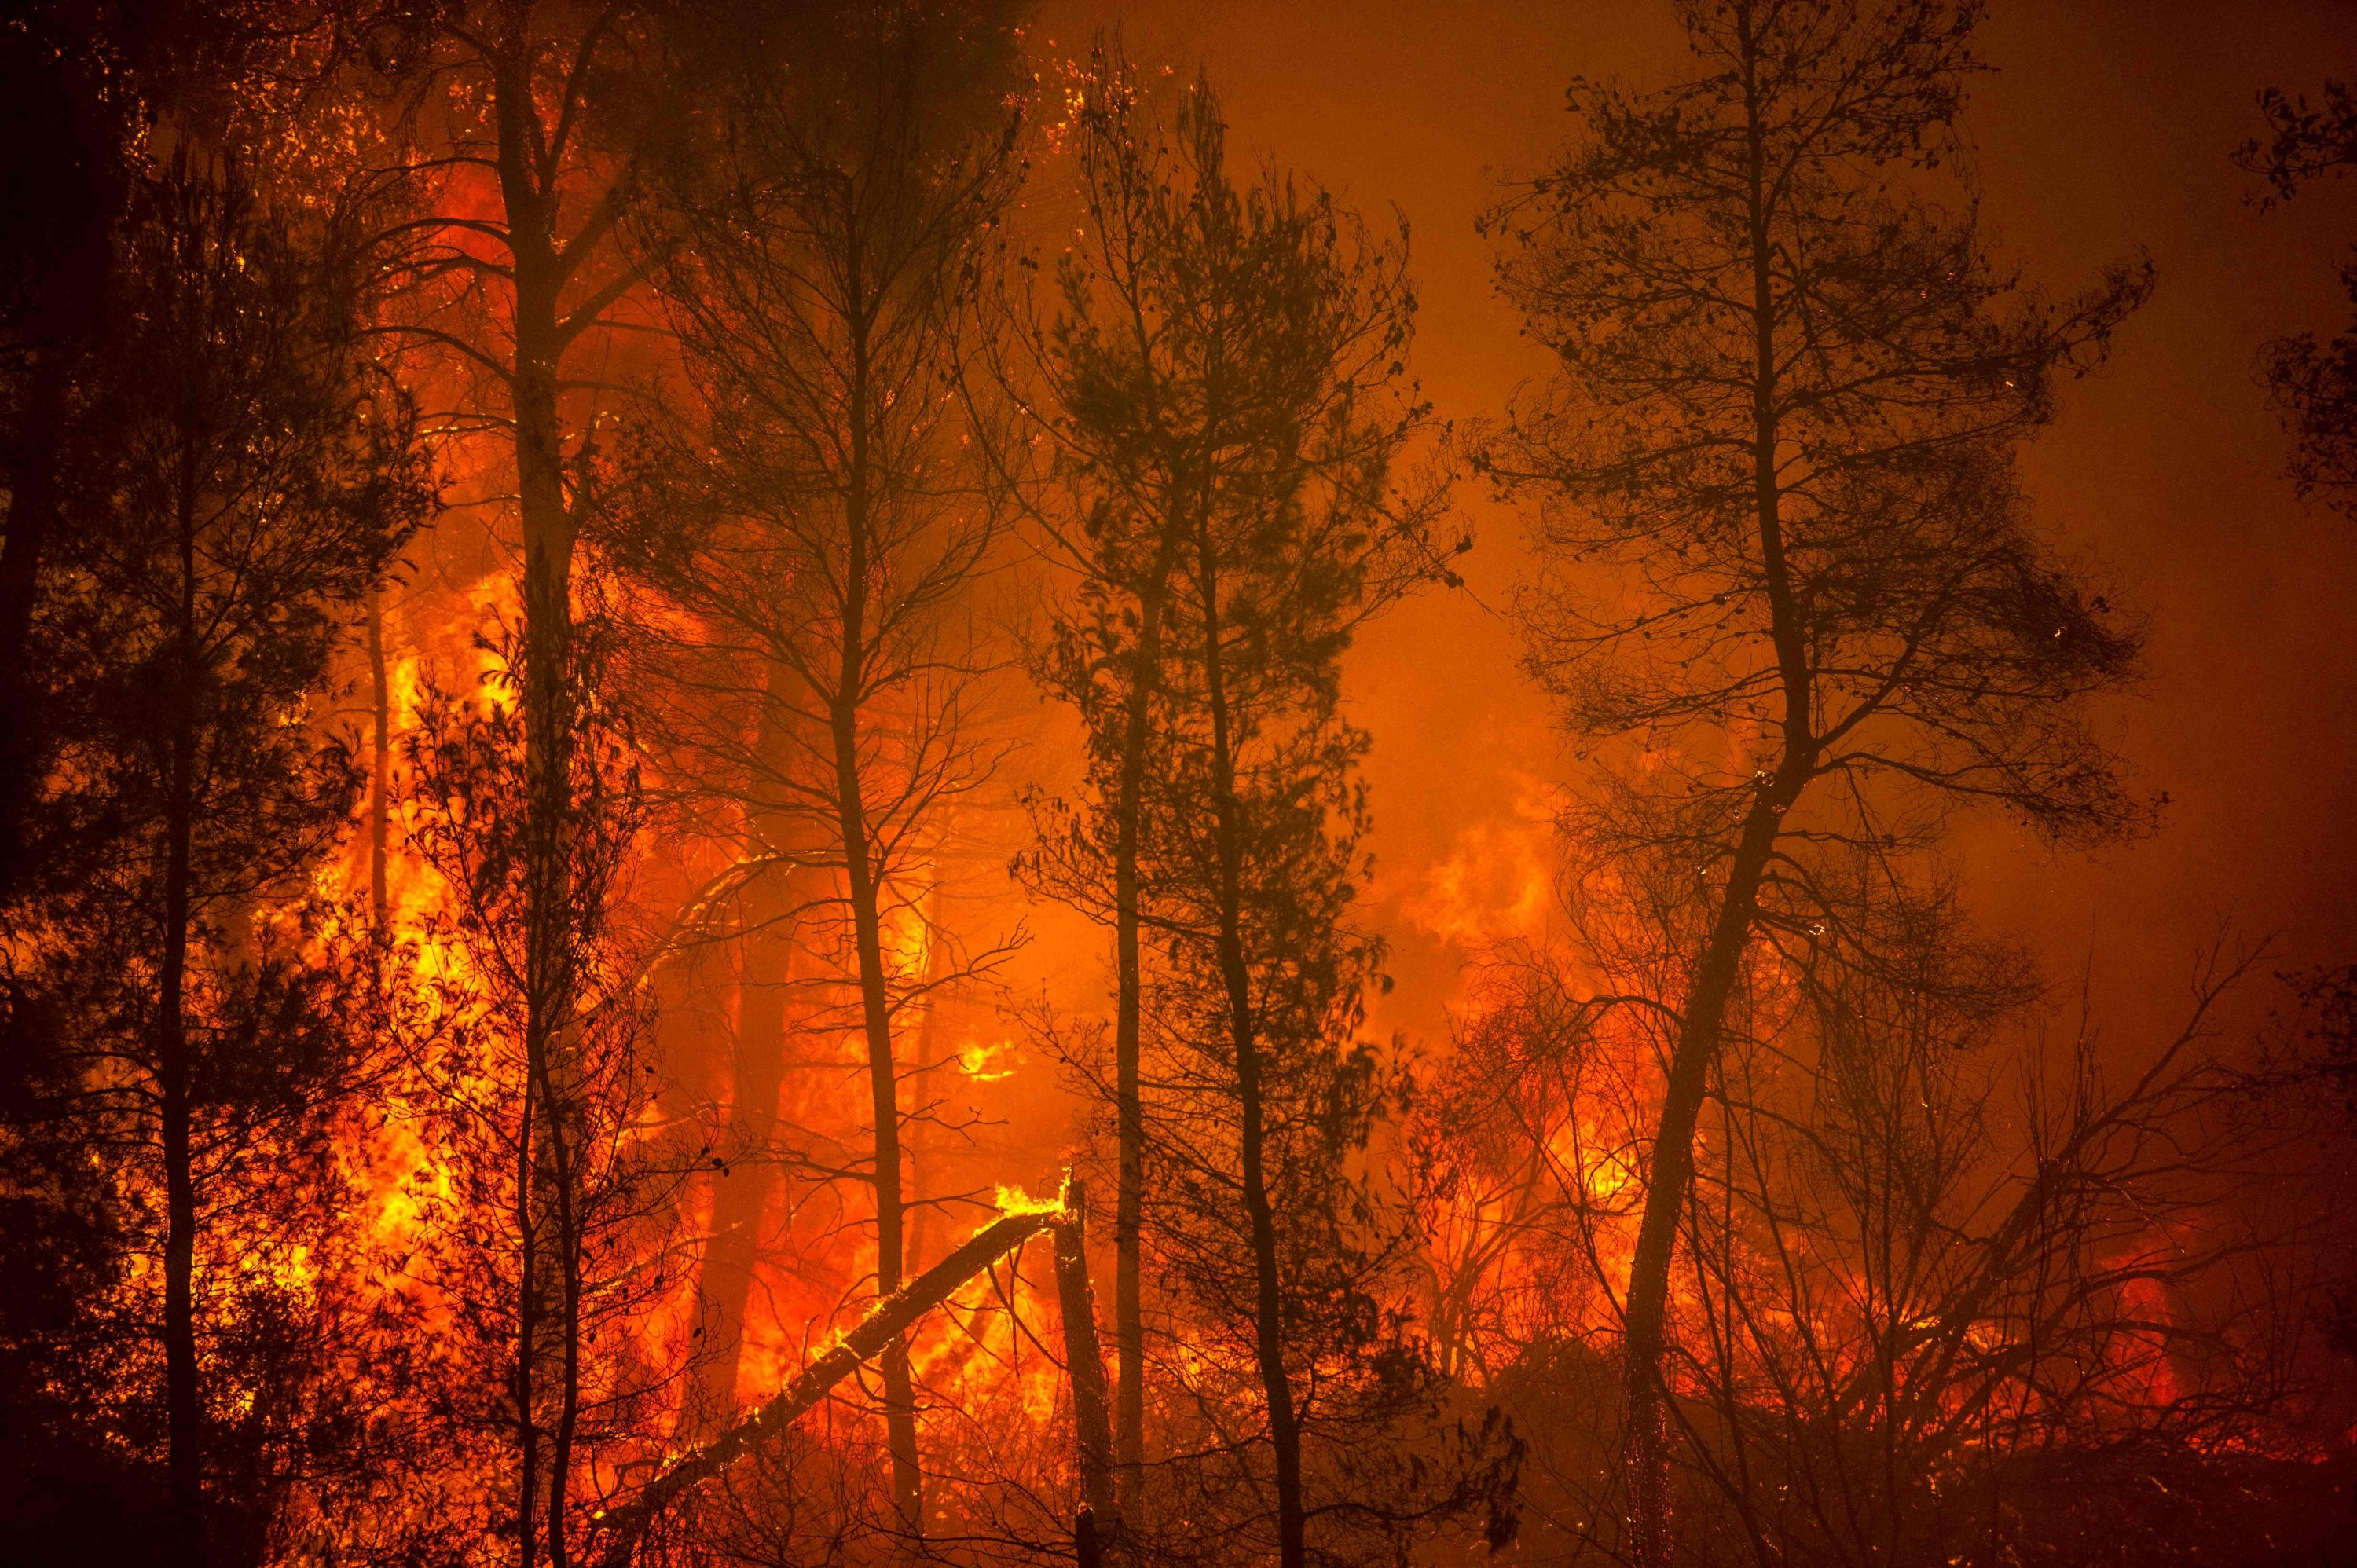 A blaze engulfs trees in its path as forest fires approach the village of Pefki on Evia (Euboea), Greece's second-largest island, on Aug. 8, 2021. (AFP Photo)